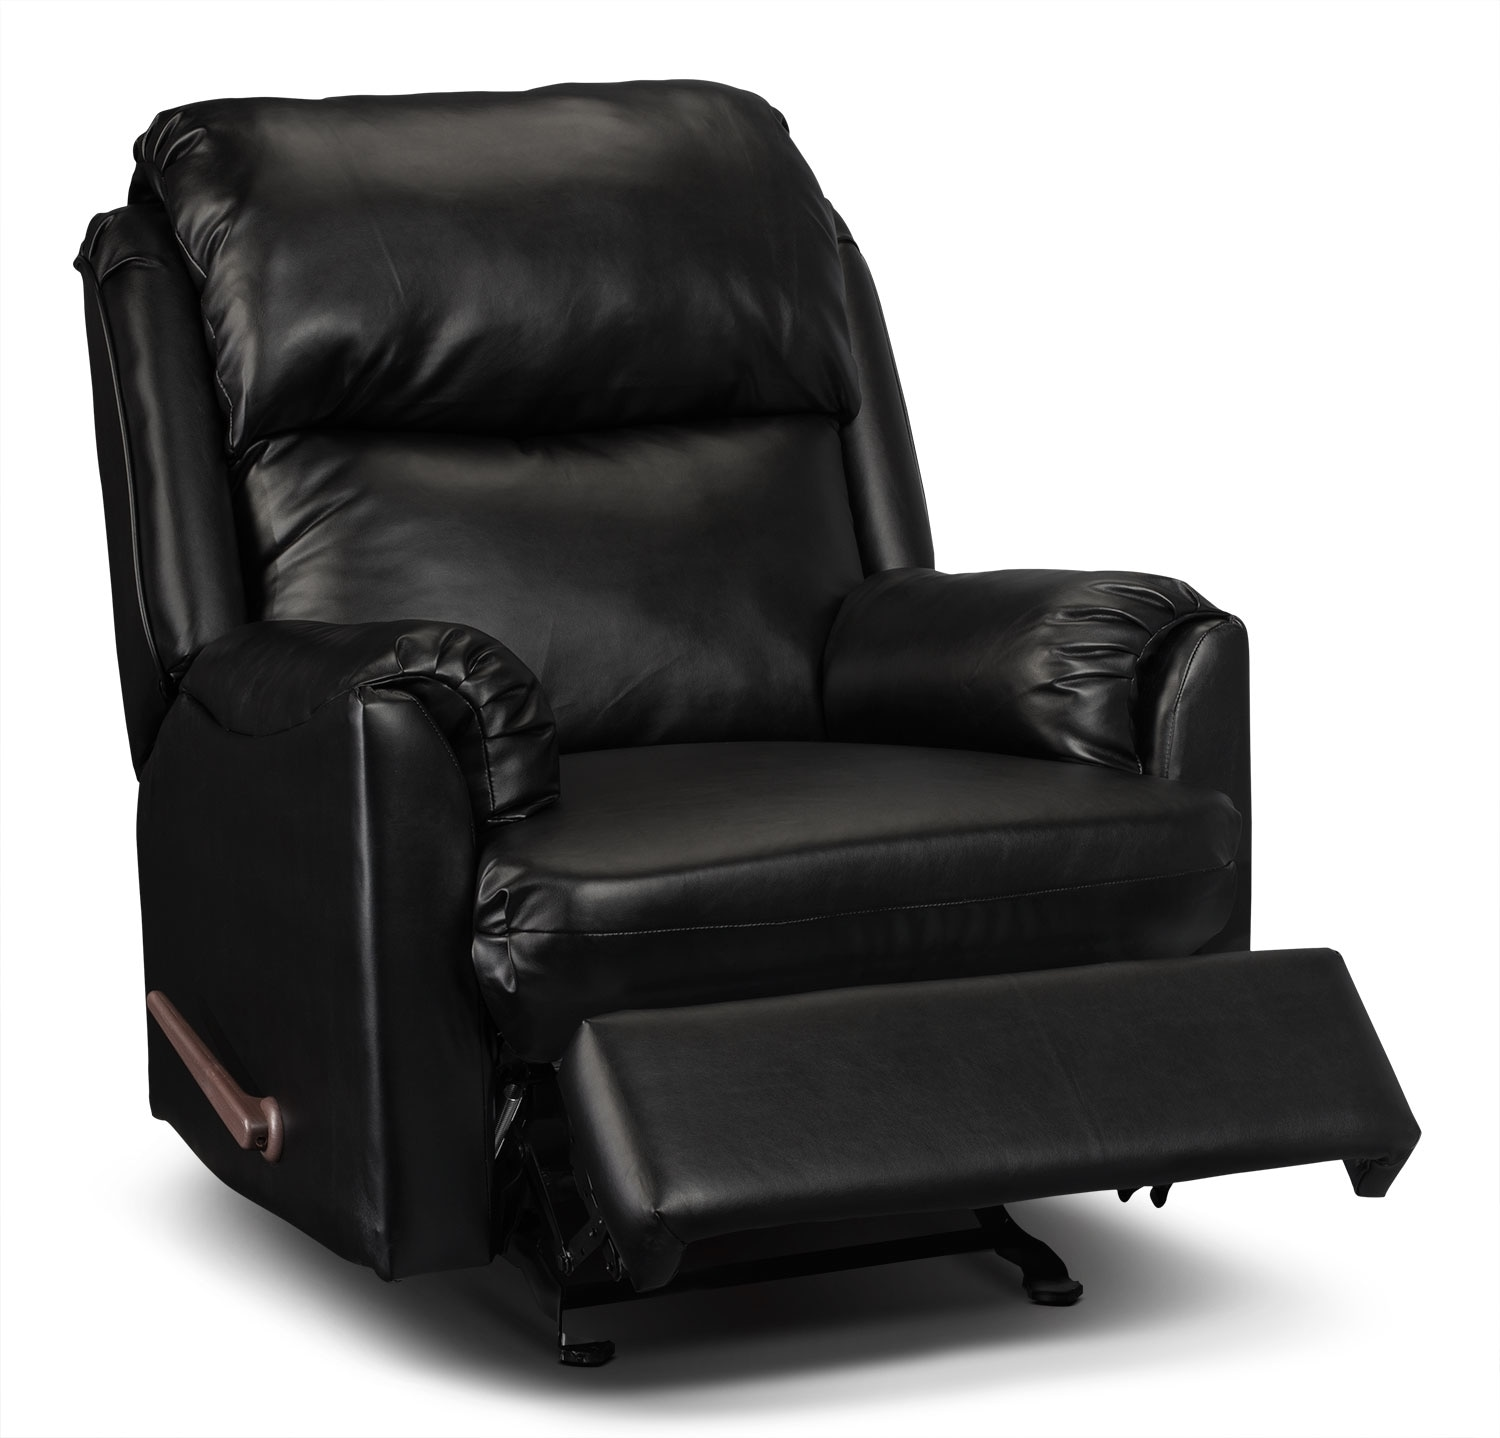 drogba faux leather recliner black the brick. Black Bedroom Furniture Sets. Home Design Ideas